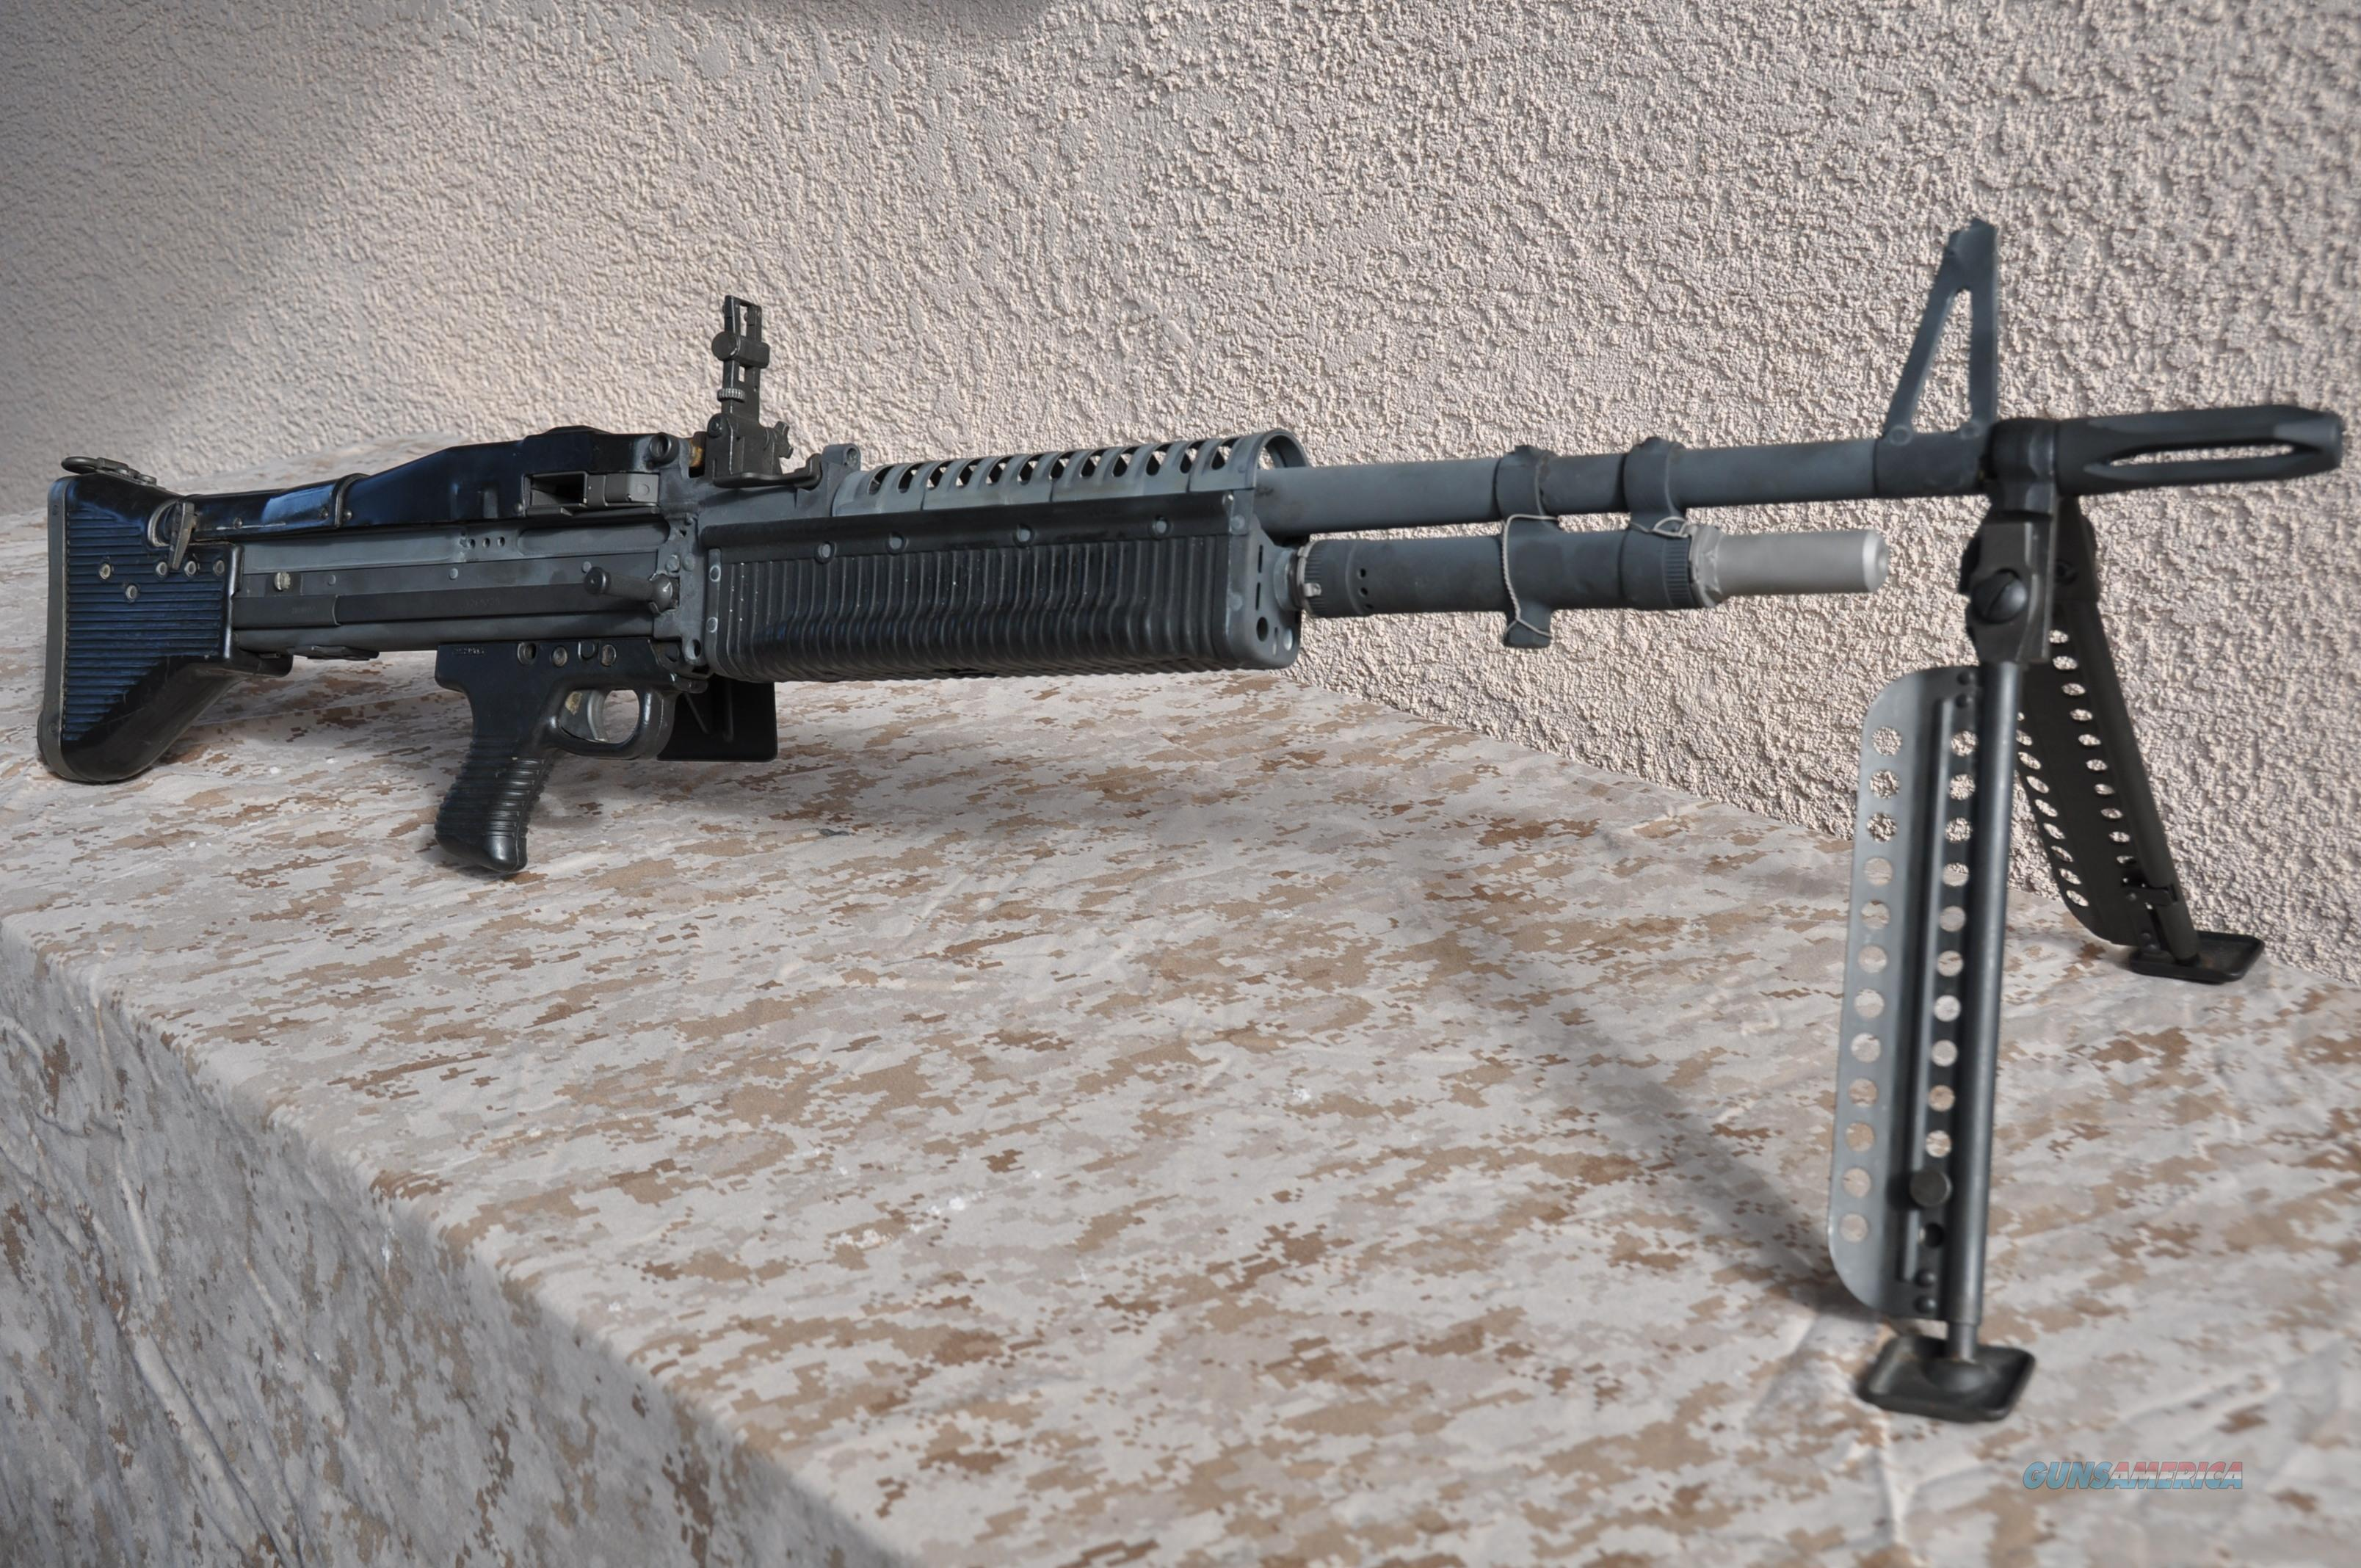 The mm NATO M60E6 General Purpose Machine Gun (GPMG) represents the latest improvements to the M60 Series of machine guns. It is a gas operated, disintegrating link, belt fed, air-cooled machine gun.